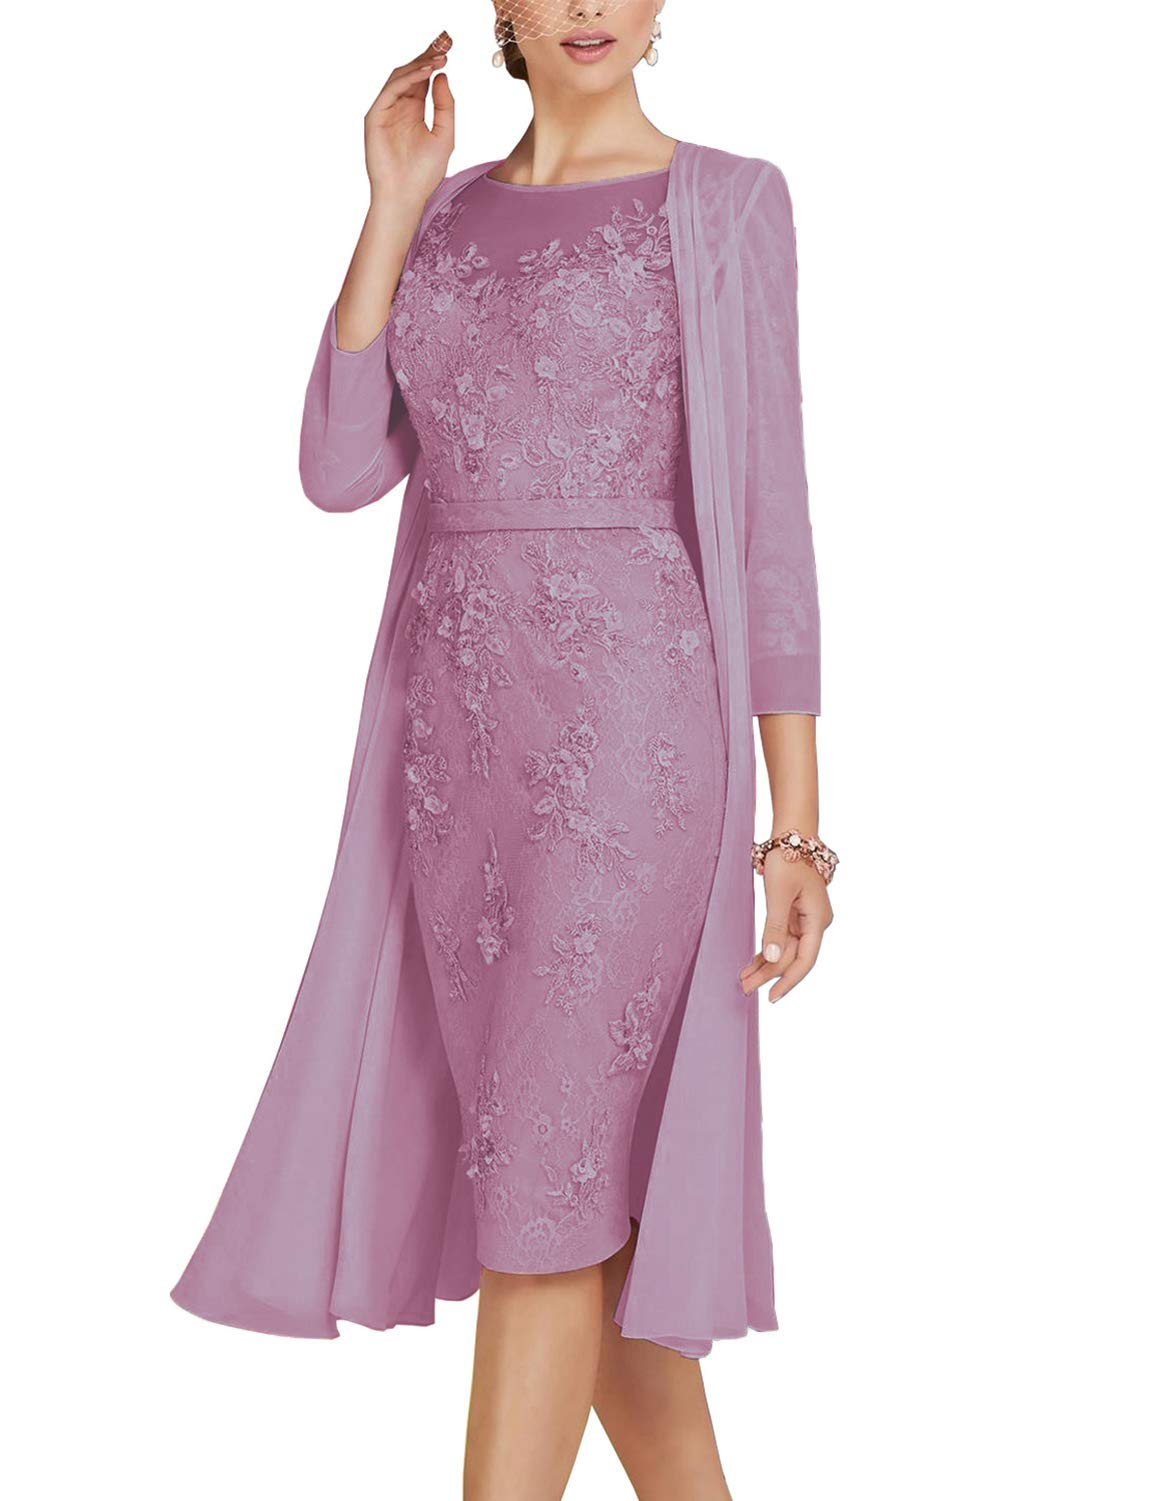 Light Pink Lace Mother of The Brides Groom Dress Tea Length with Chiffon Jacket